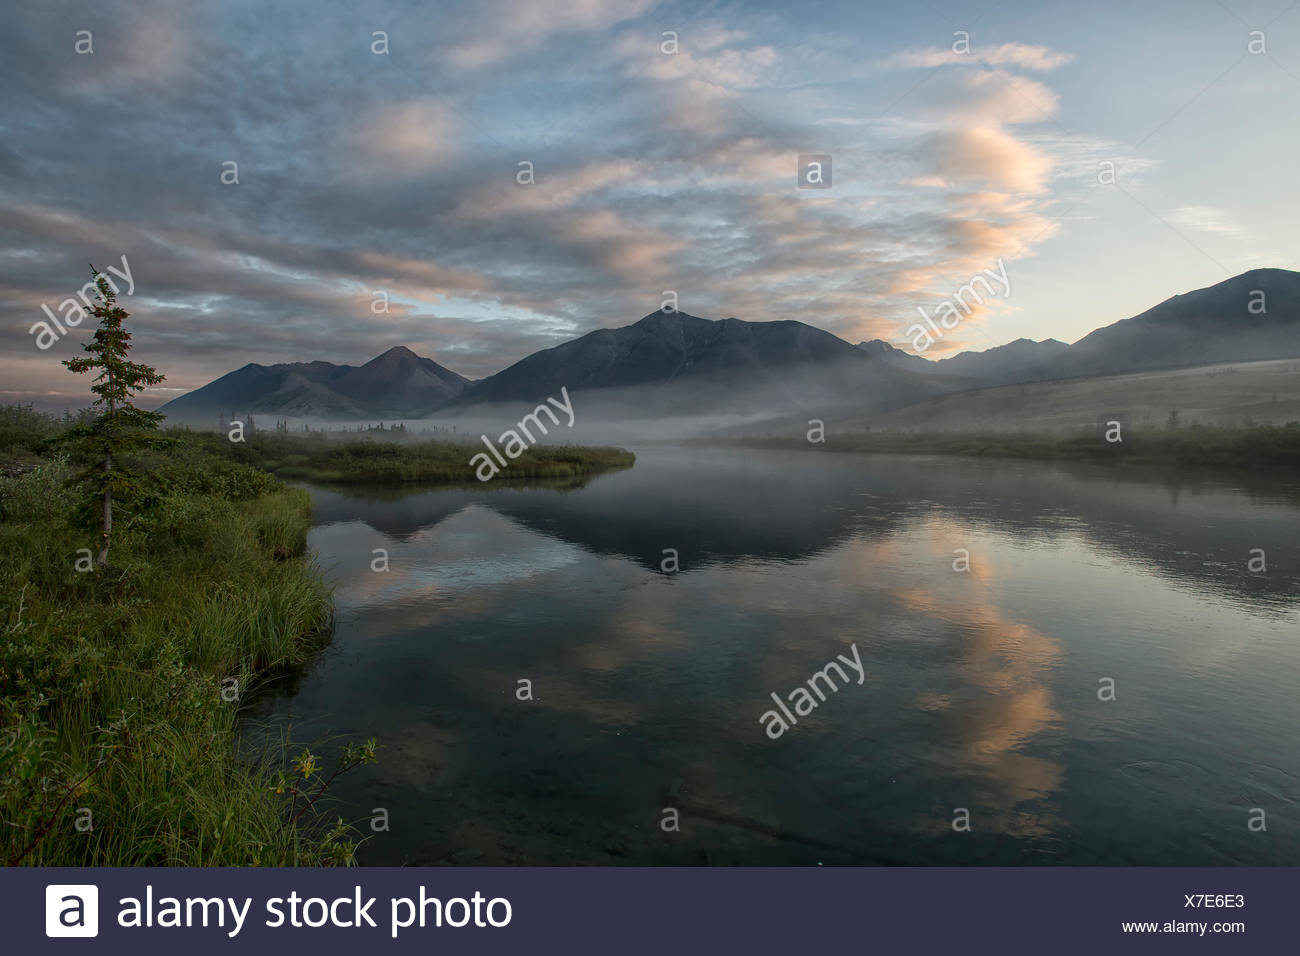 Landscape images from the Wind River, a tributary of the Main Peel River. Mackenzie Mountains reflected in the calm waters of the Wind River. Stock Photo